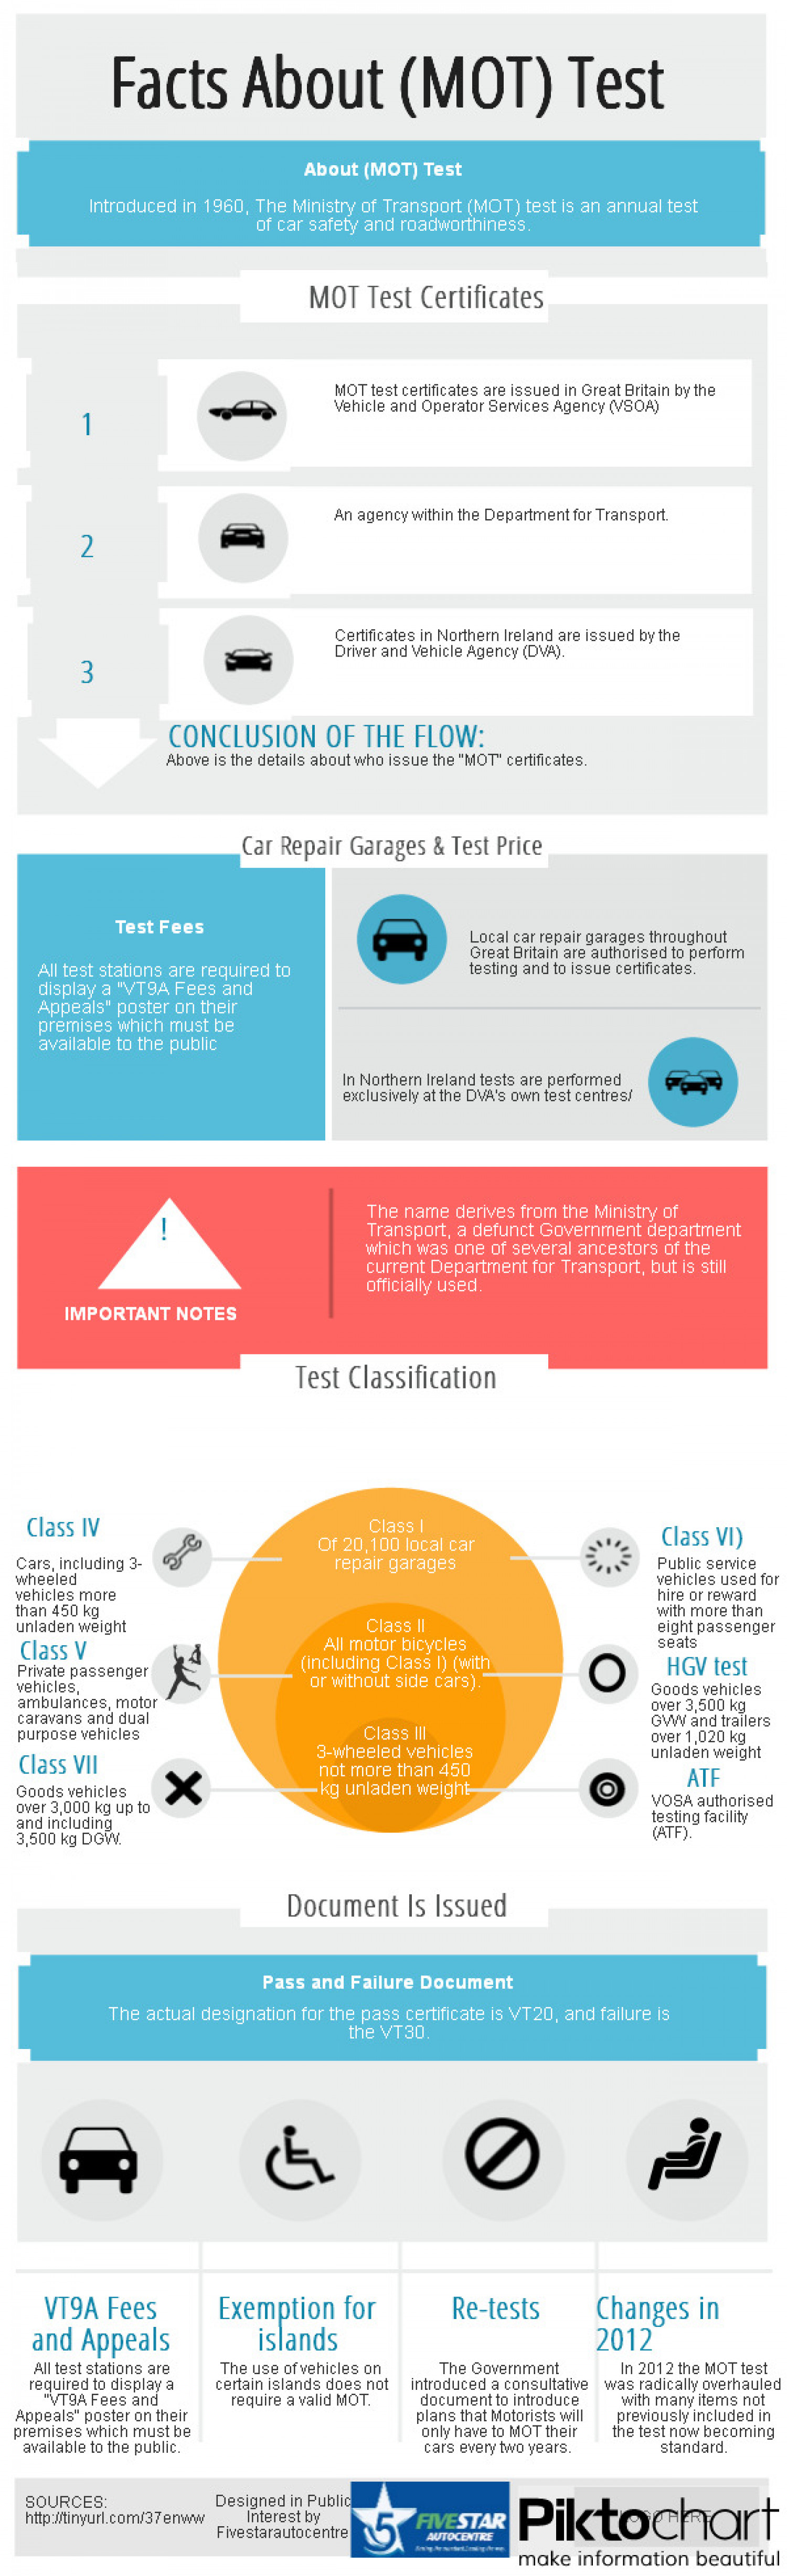 Facts About (MOT) Test  Infographic